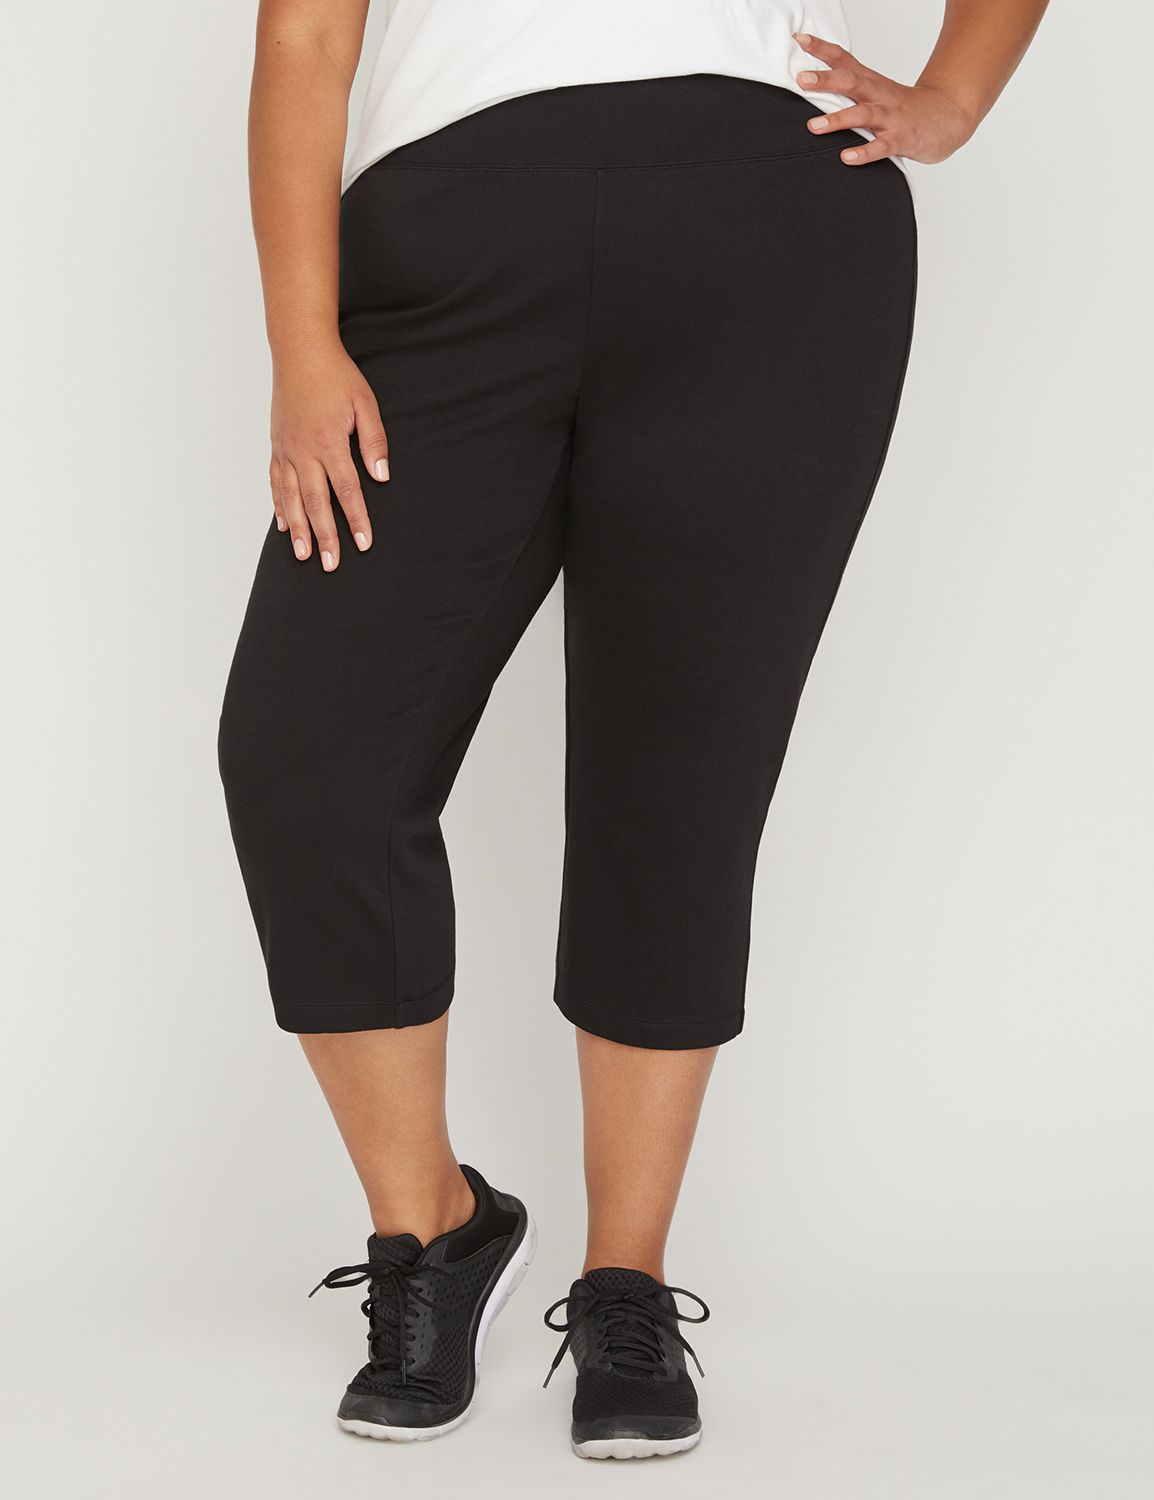 Yoga Capri Yoga Capri MP-300054227